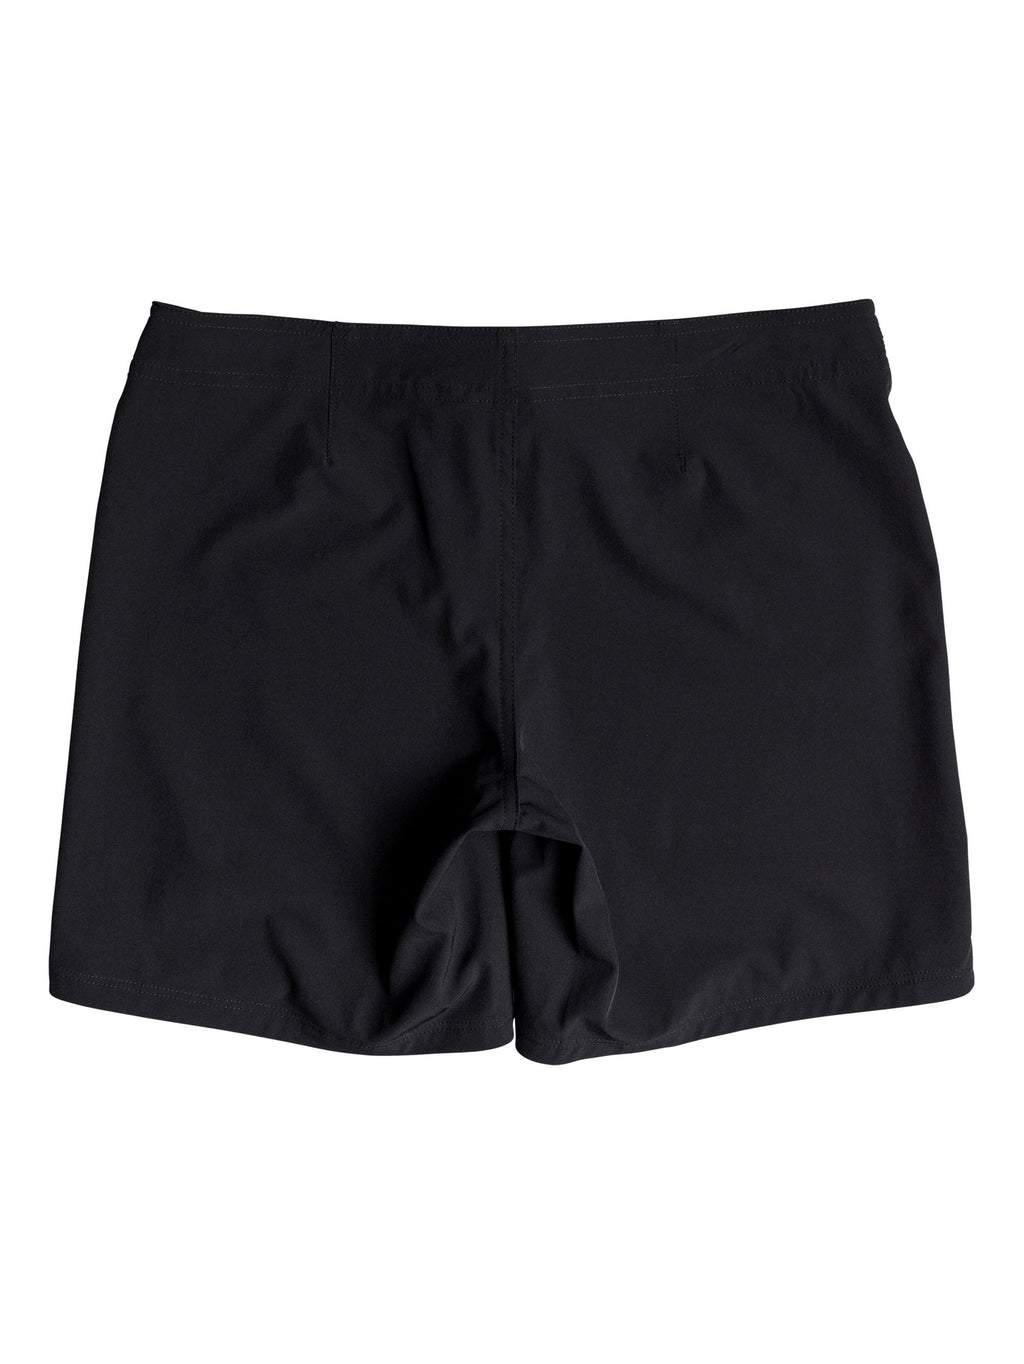 "Roxy To Dye 7"" Boardshorts - Women's"